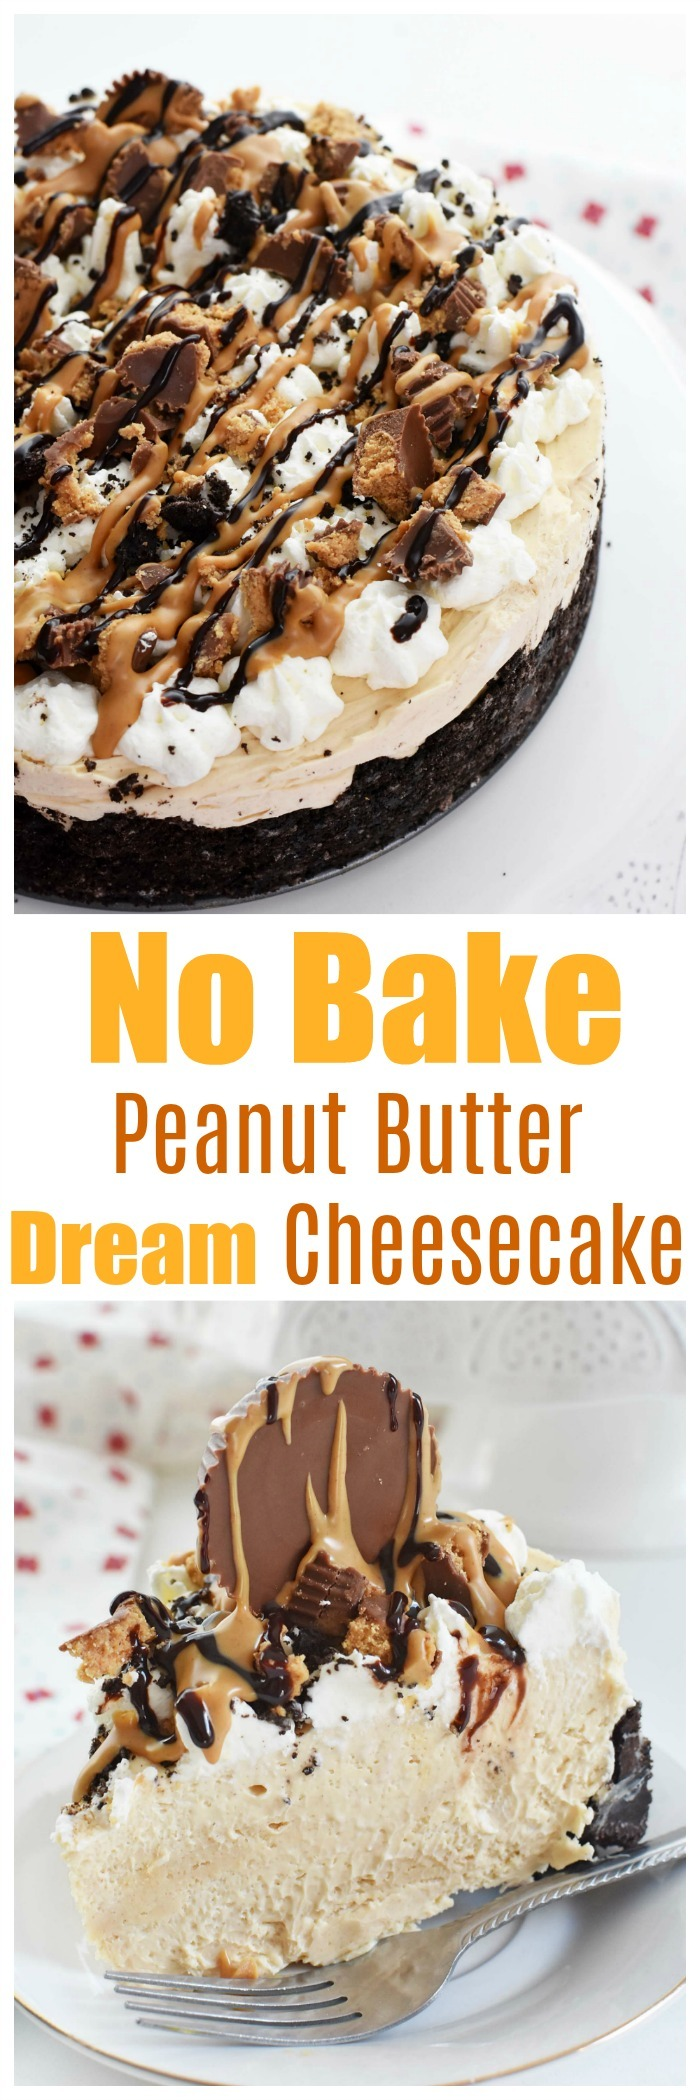 No Bake Peanut Butter Dream Cheesecake Recipe